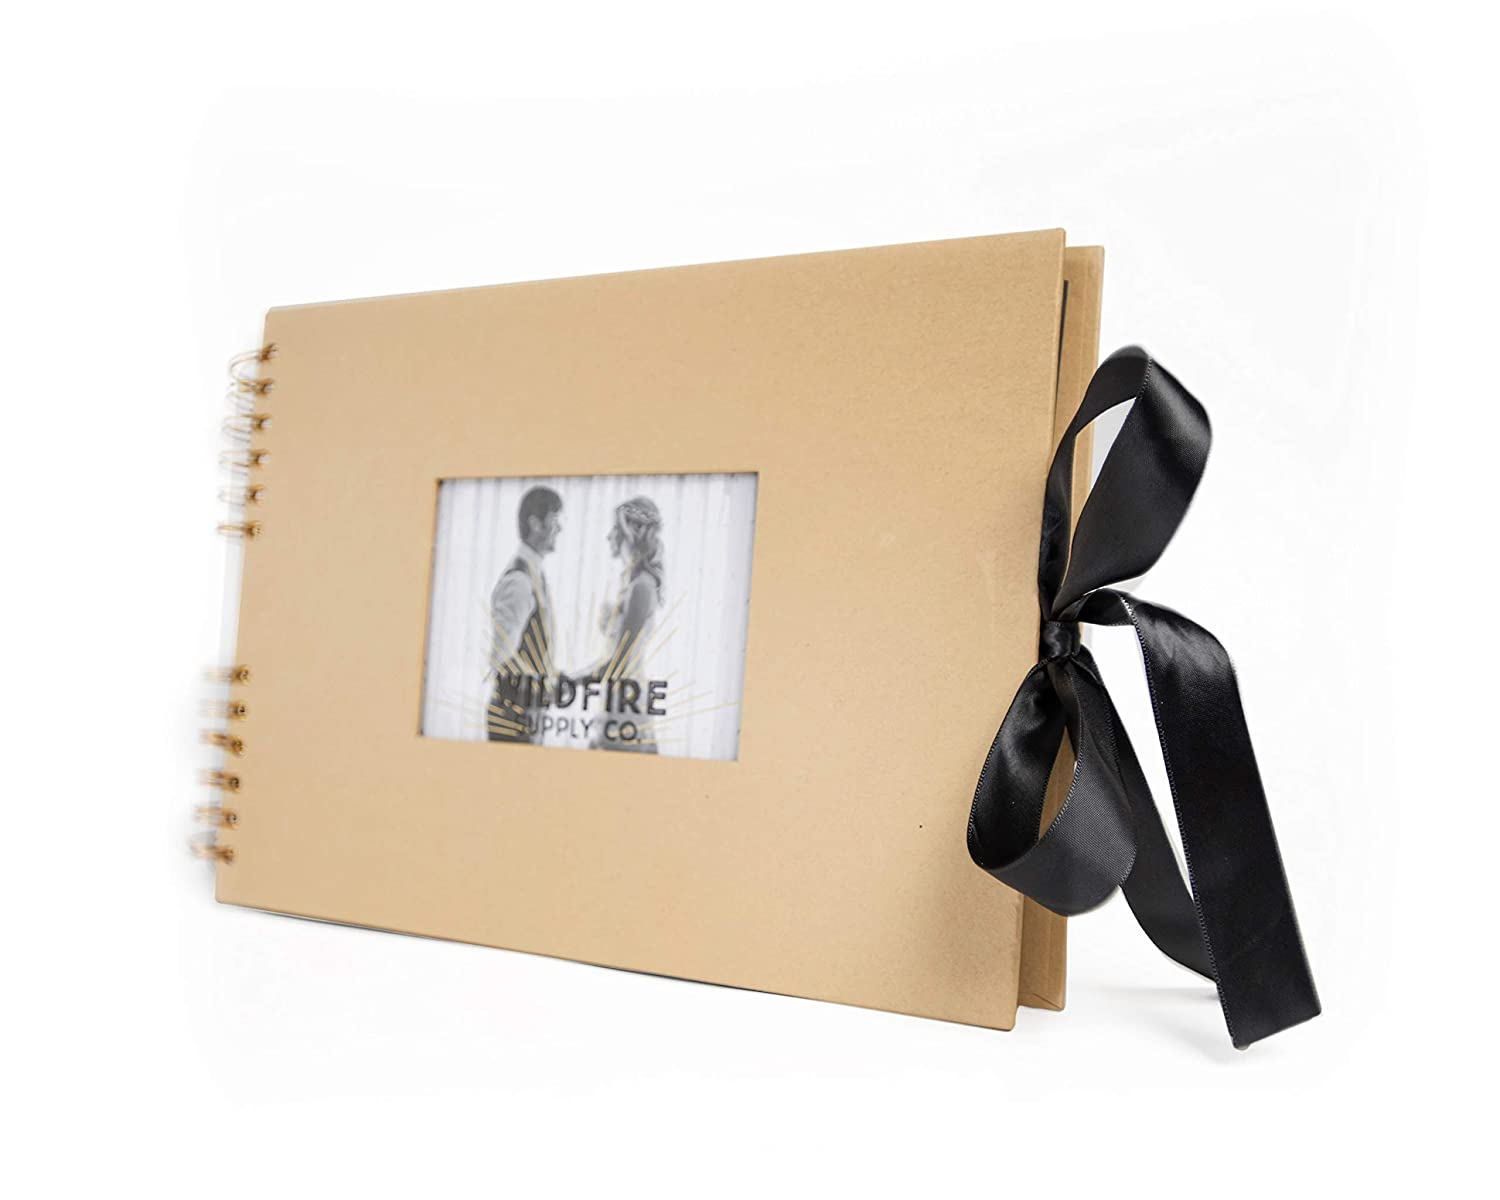 """Luxurious Scrapbook Photo Album with Wrinkle-Free Ribbon Closure - Elegant Scrapbooking Memory Album with 4"""" x 6"""" Front Cover Insert - DIY Wedding, Anniversary, Guest, Family, Baby Scrap Book Journal Wildfire Supply Co."""